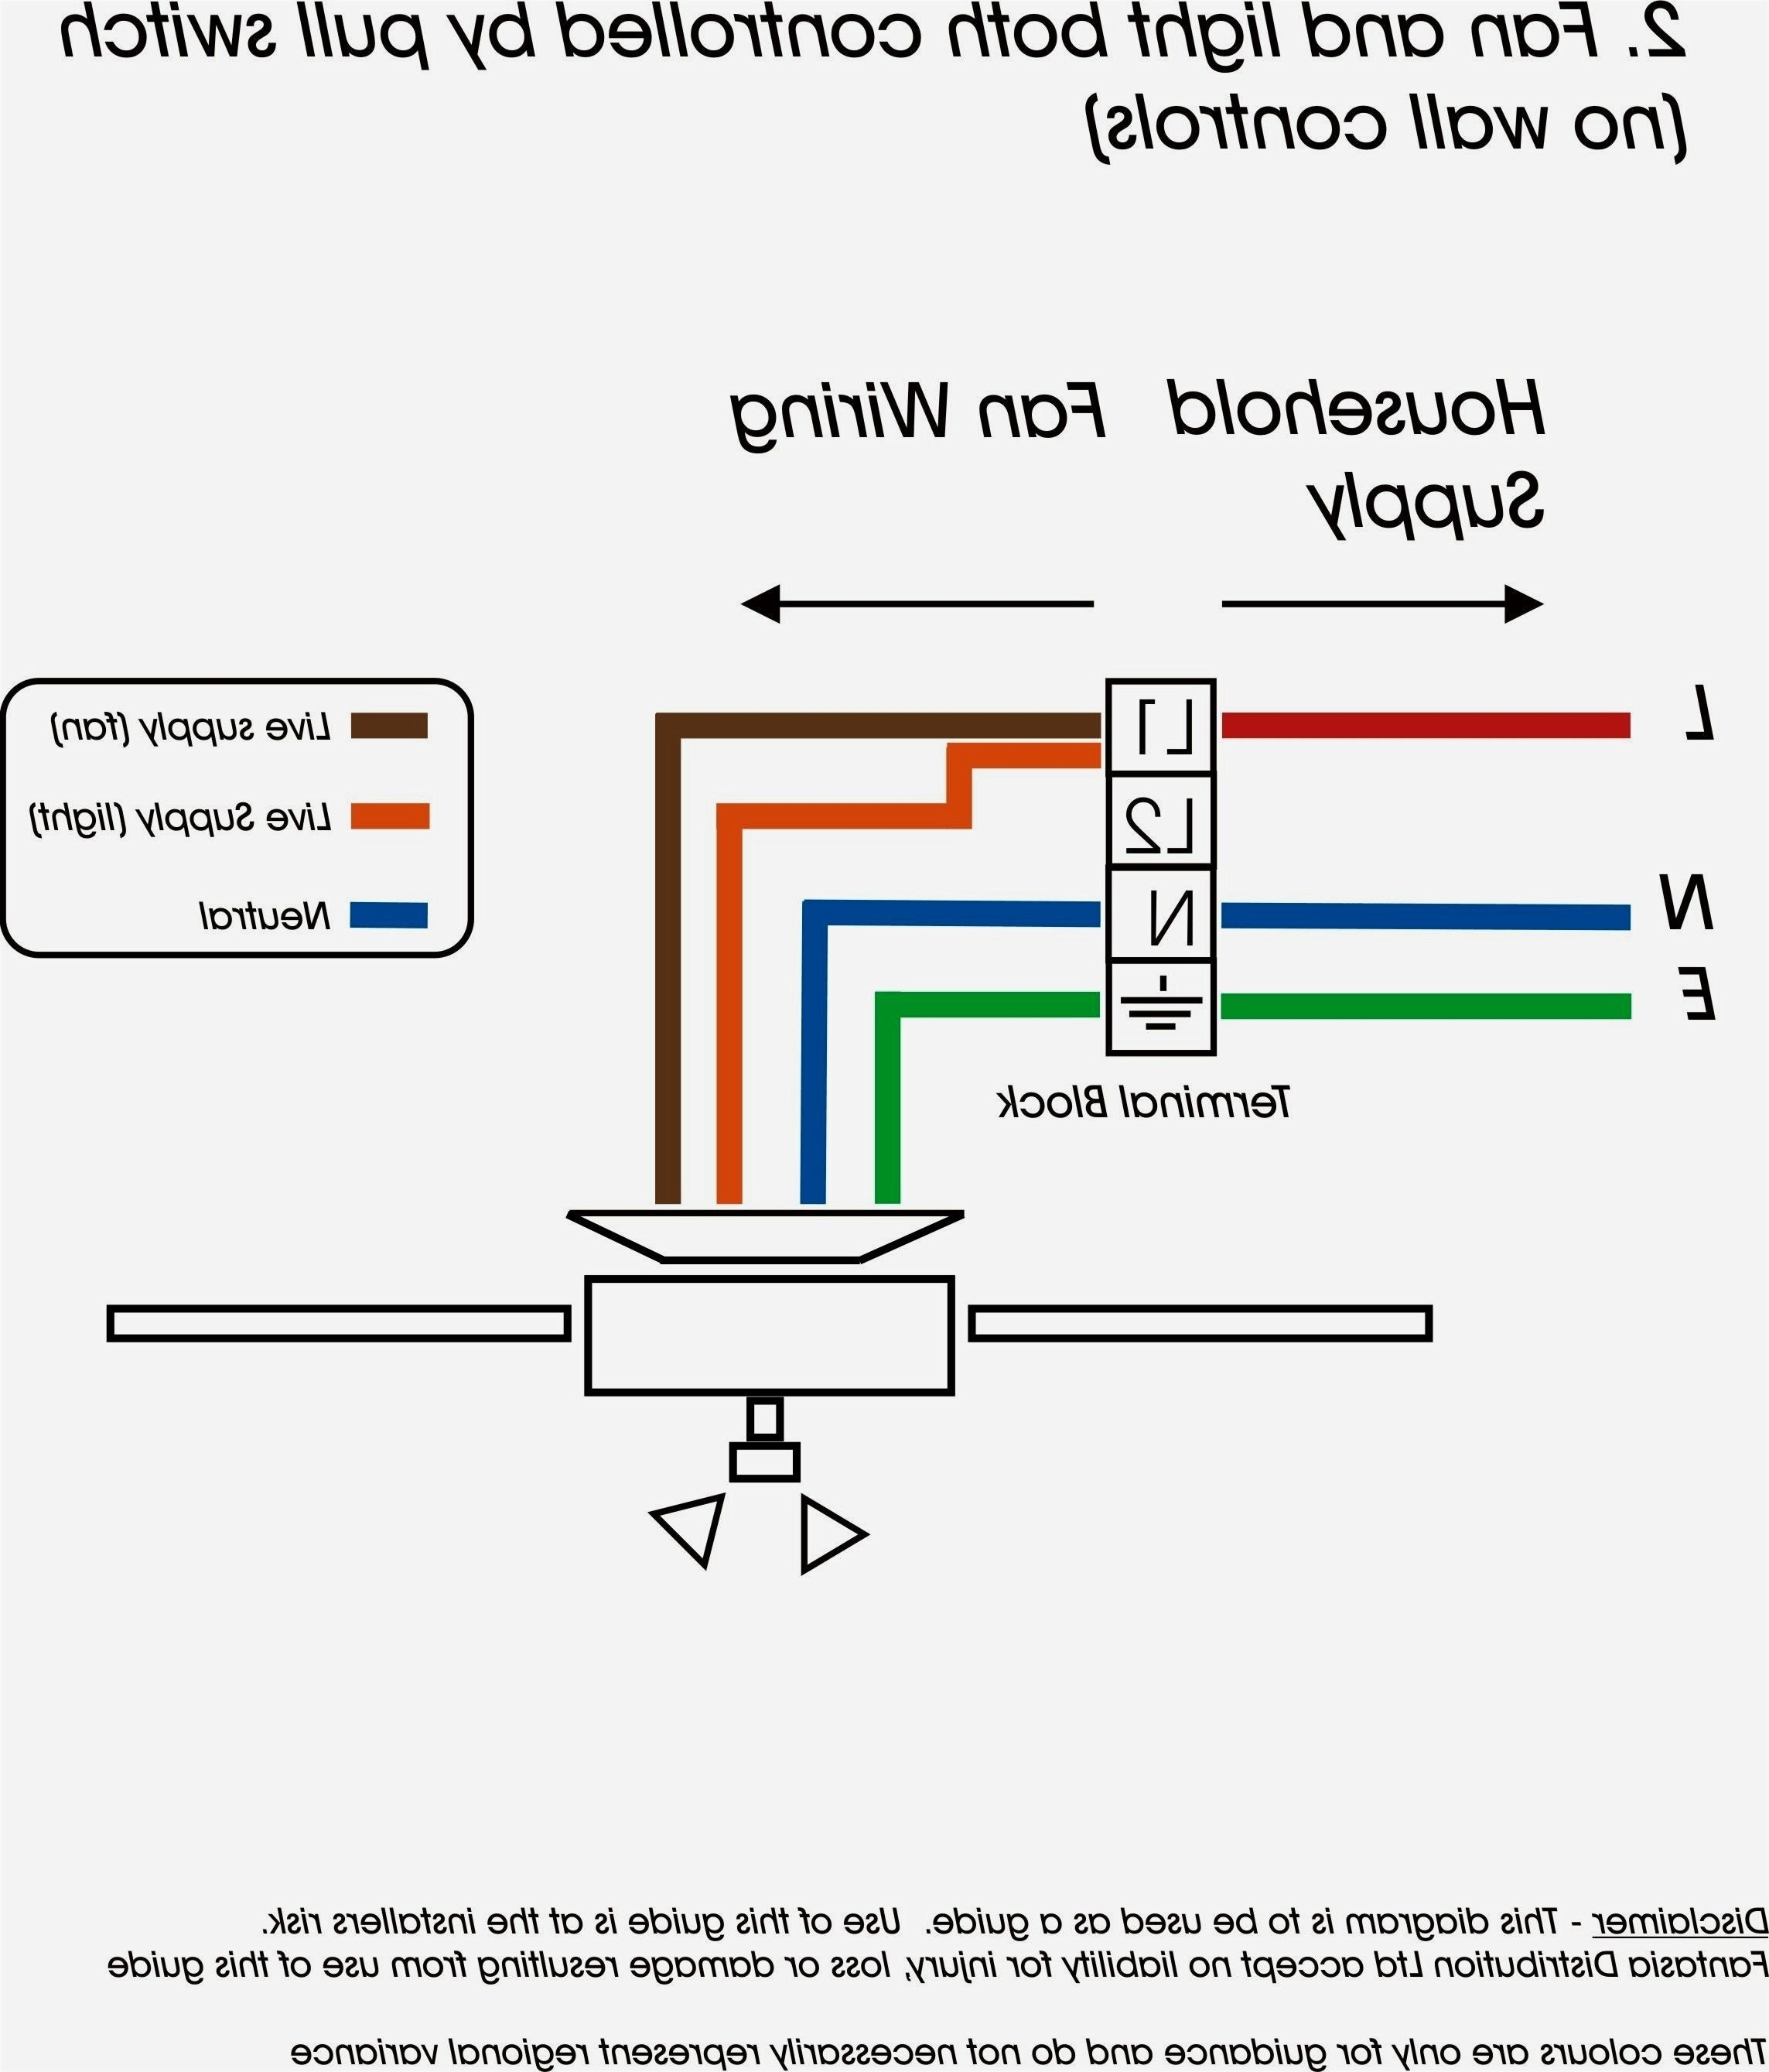 hopkins 7 pin trailer wiring diagram Collection-Wiring Diagram For Hopkins Trailer Plug Inspirational Hopkins 7 Pin Trailer Wiring Diagram 5-q